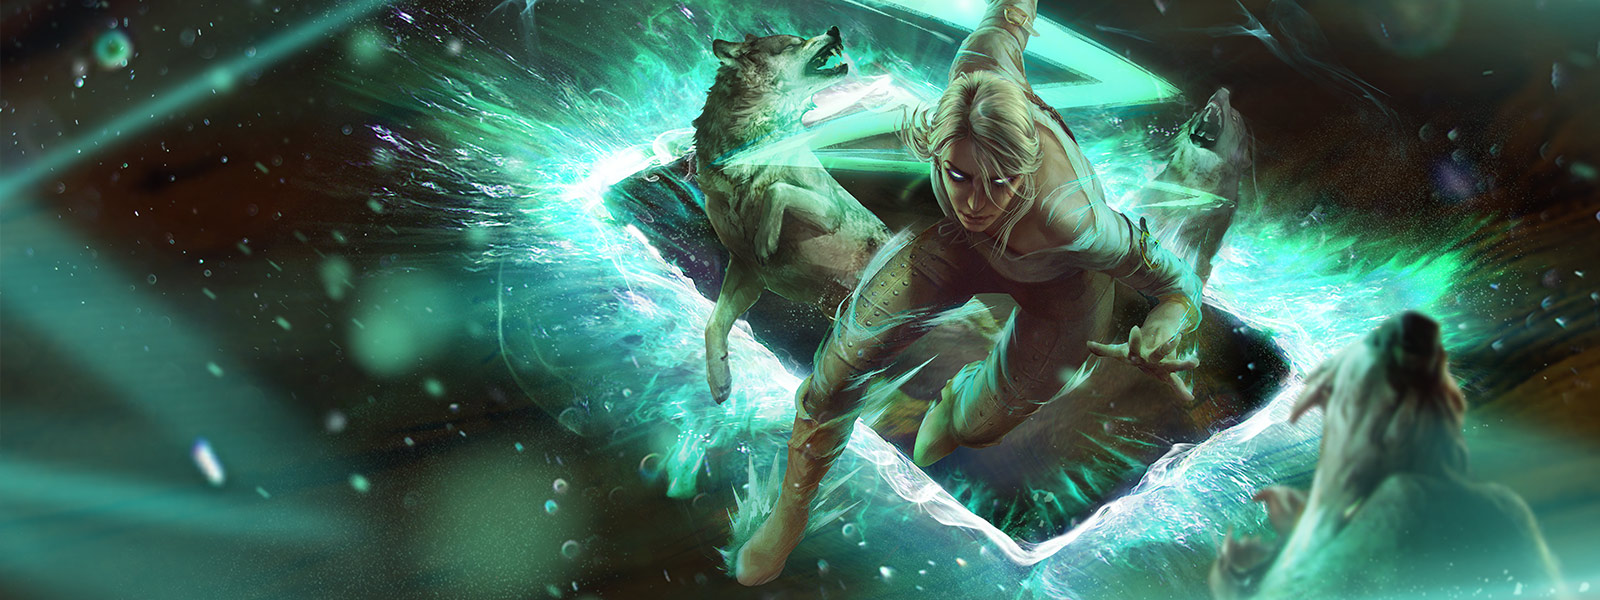 Ciri attacking wolves with spells